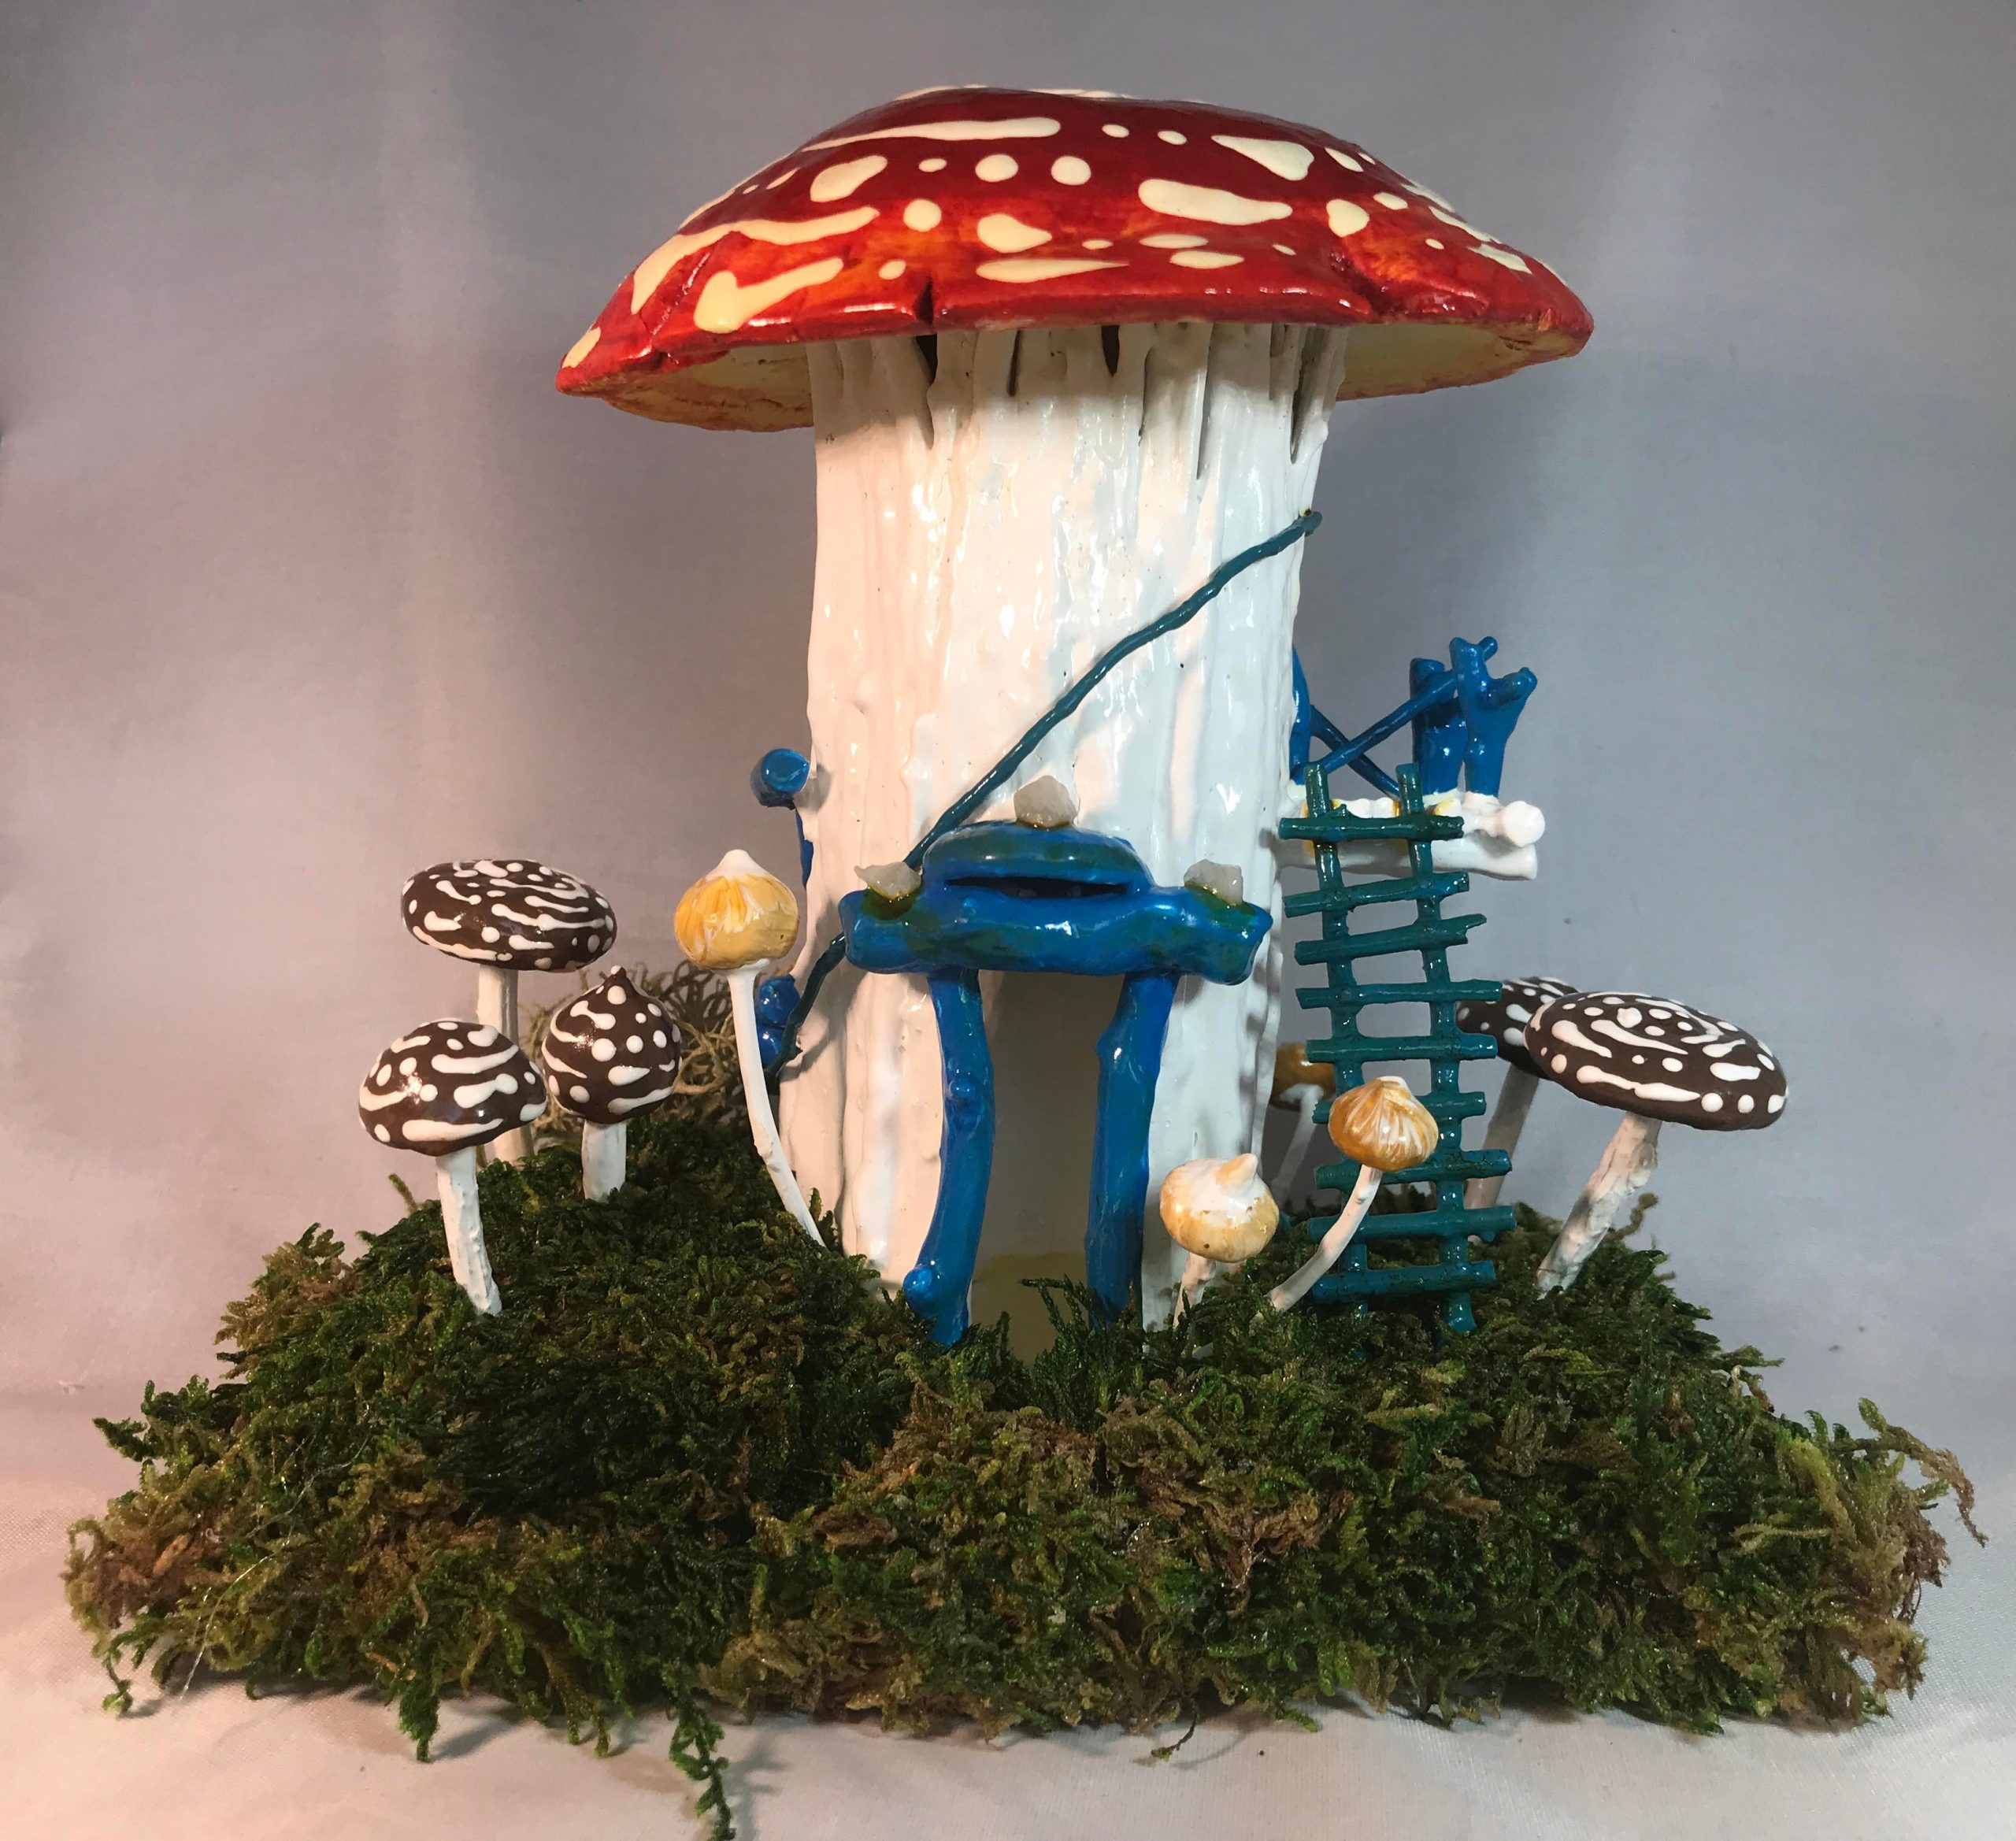 g1rod1gd1wr51 scaled - Fairy House with Amanita Muscaria cap for roof - hobbies, crafts